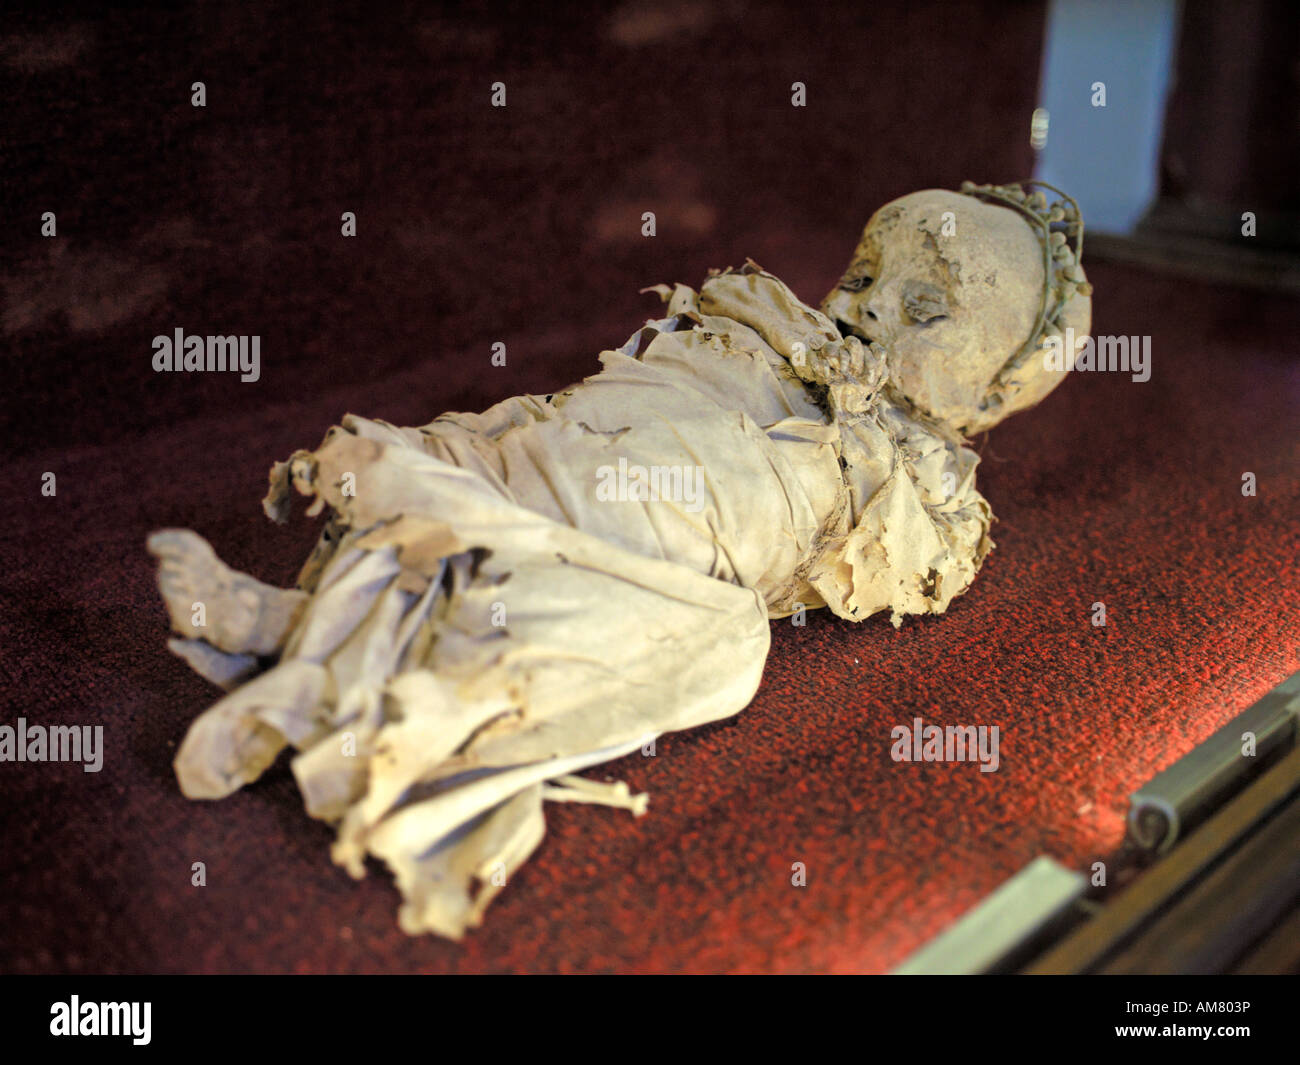 A cute mummified child lays asleep in the museum of mummies in Mexico. - Stock Image